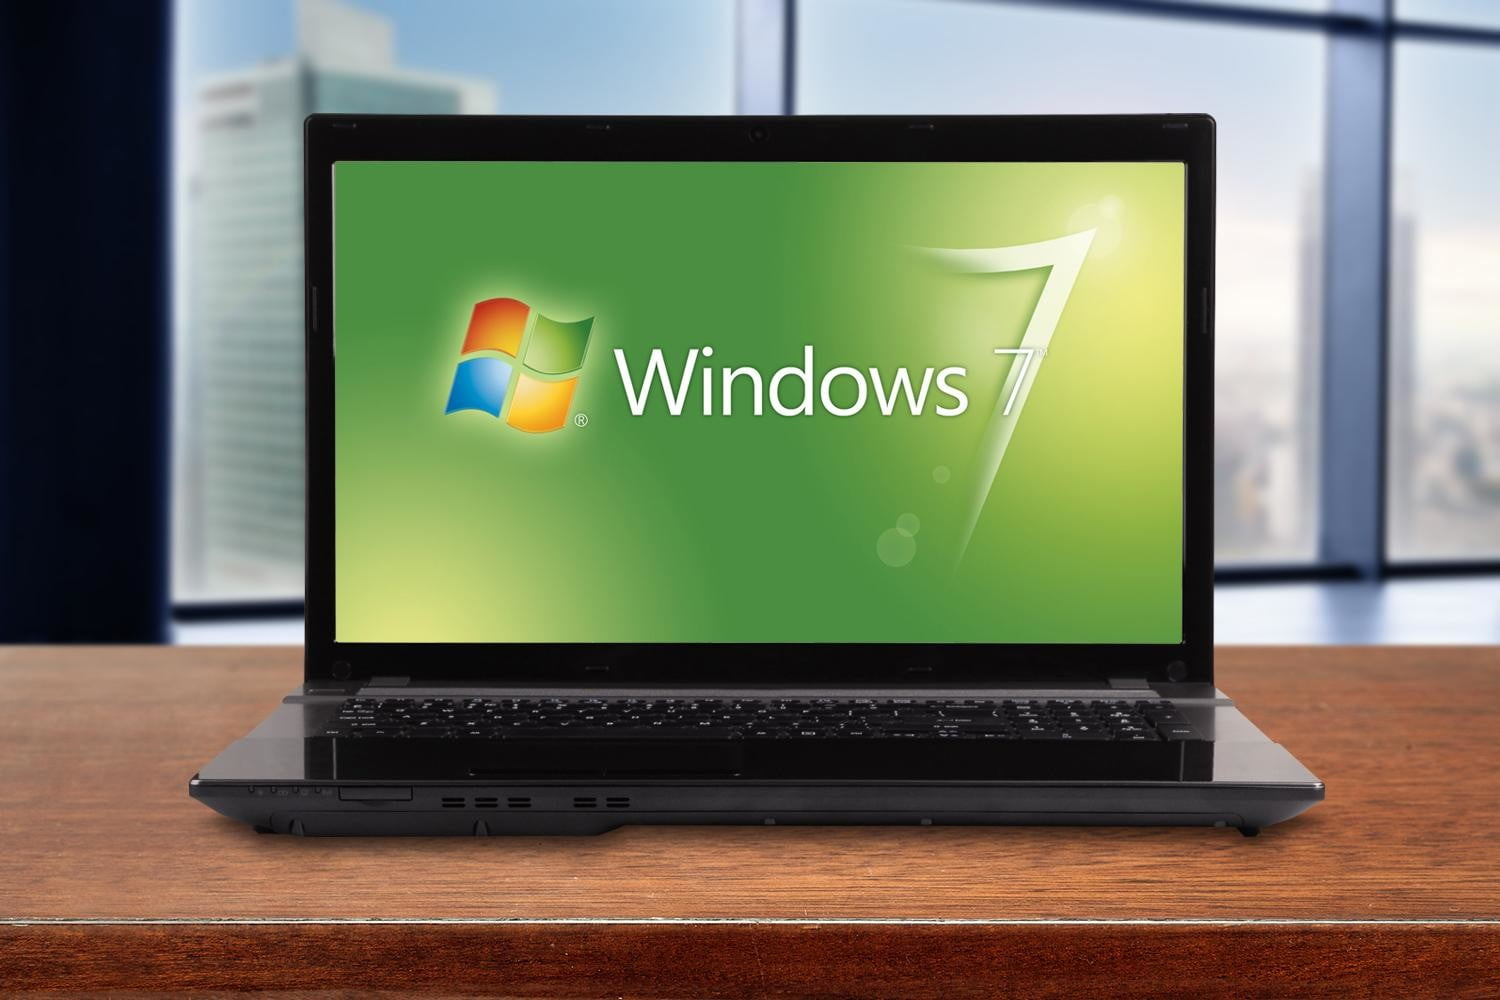 As end of support nears, Windows 7 users are finally moving to Windows 10